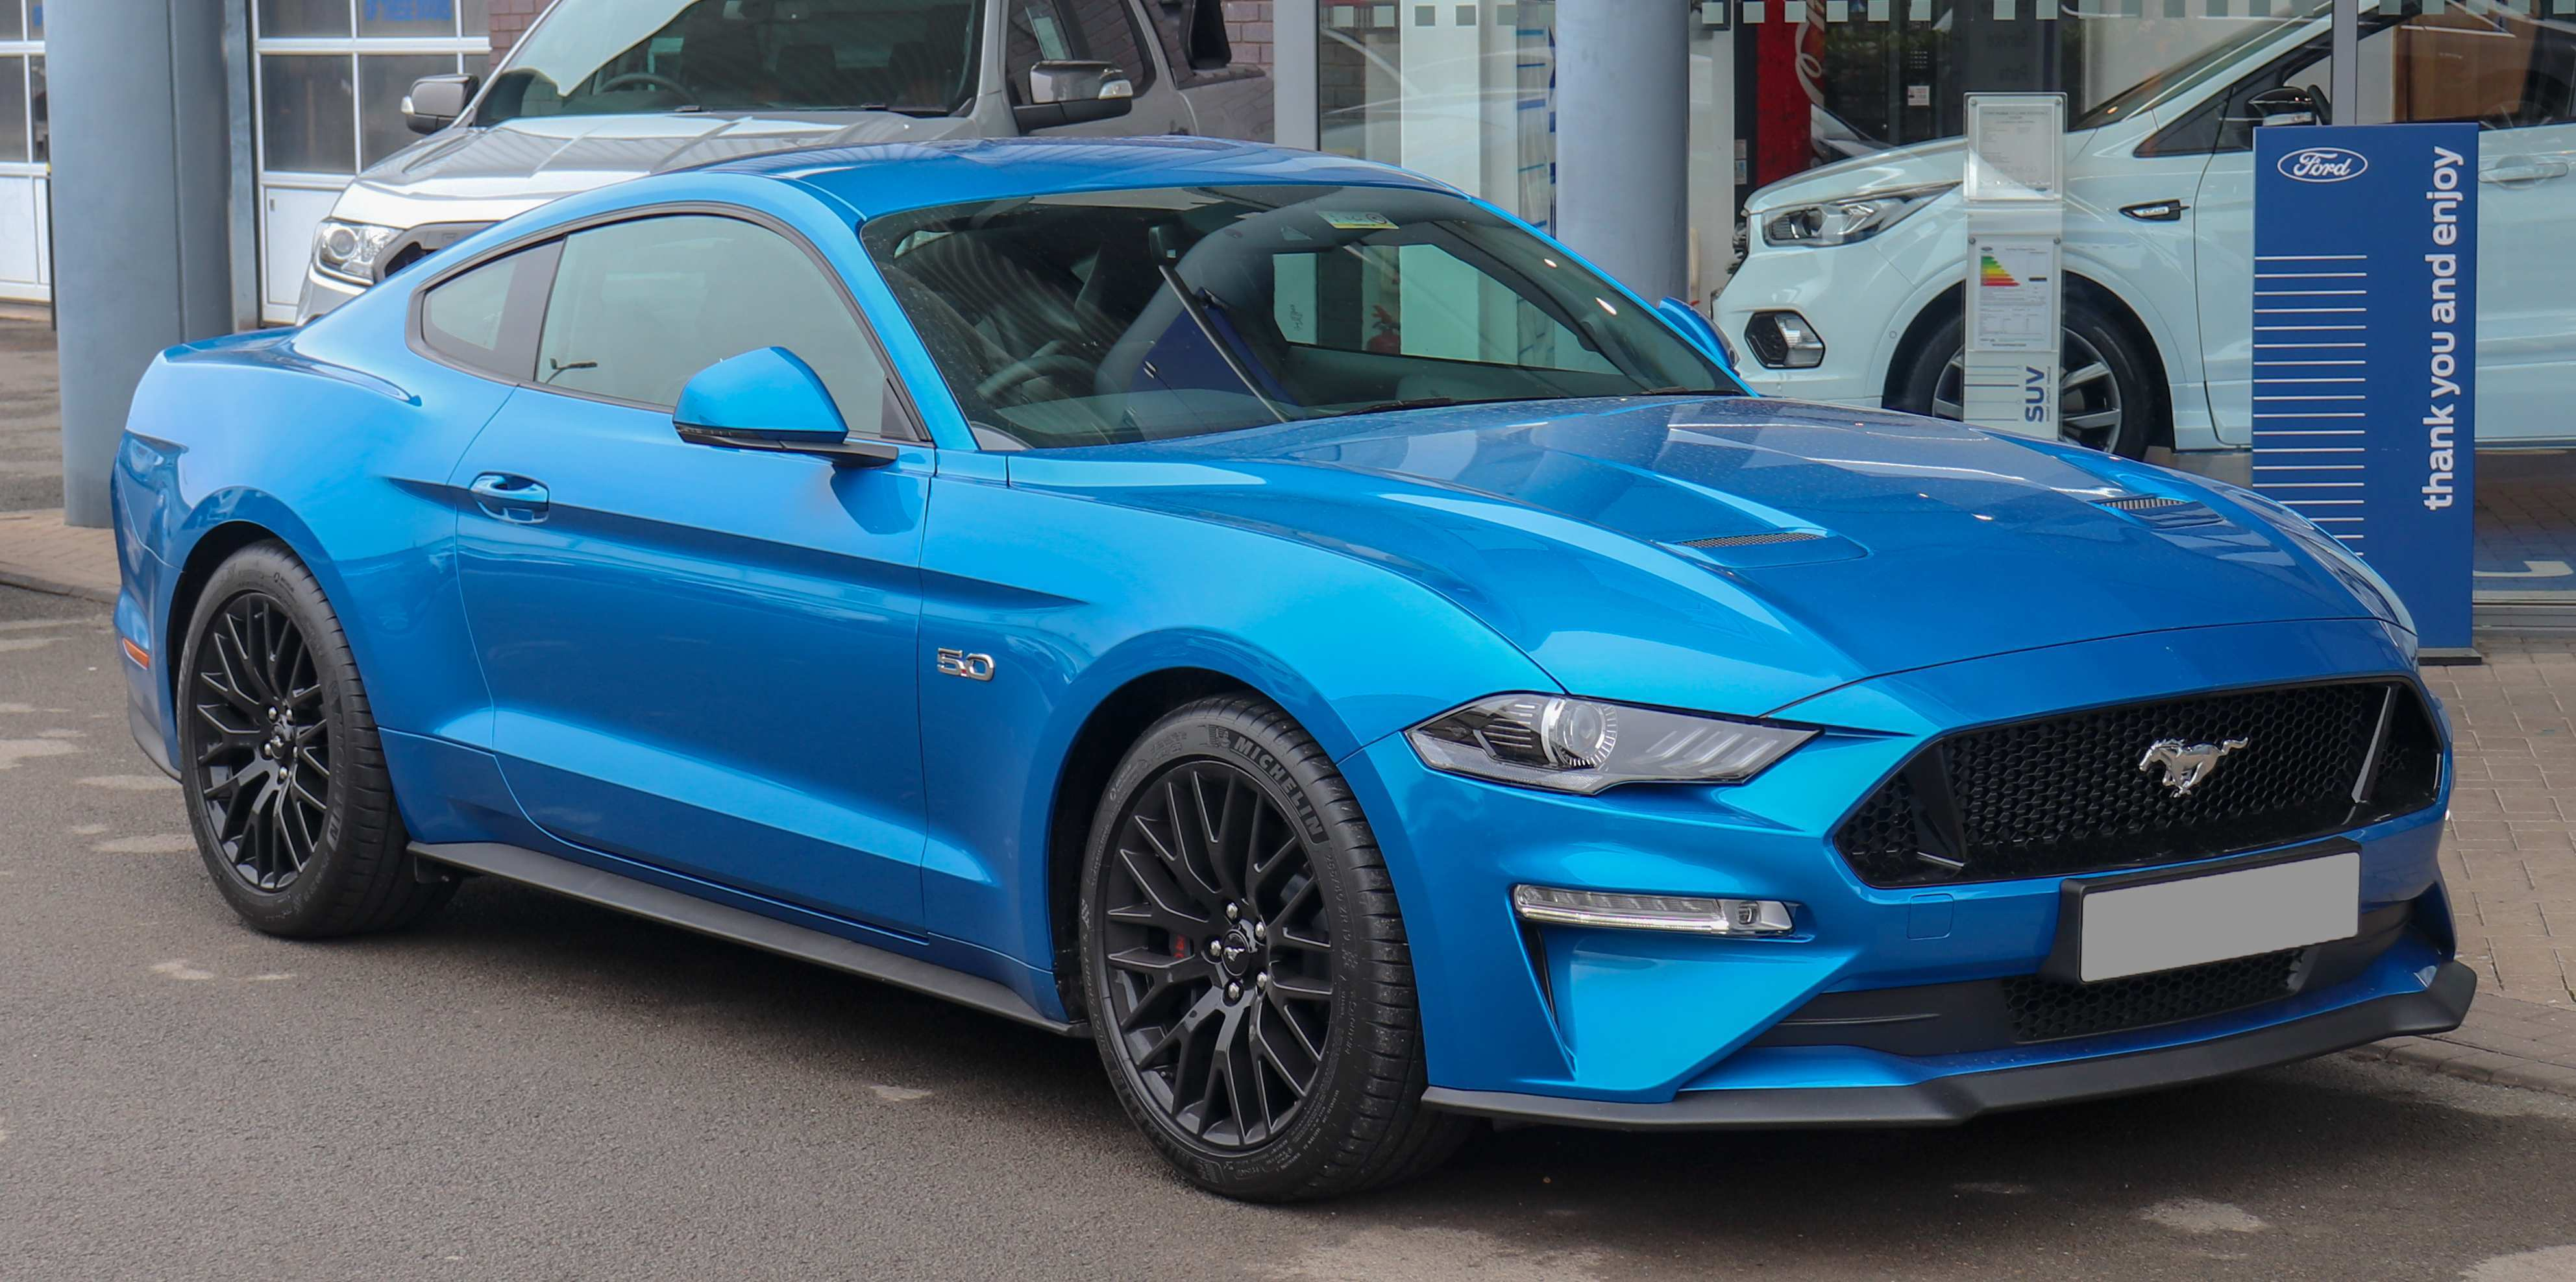 98 Best Review 2019 Mustang Mach 1 Exterior and Interior by 2019 Mustang Mach 1